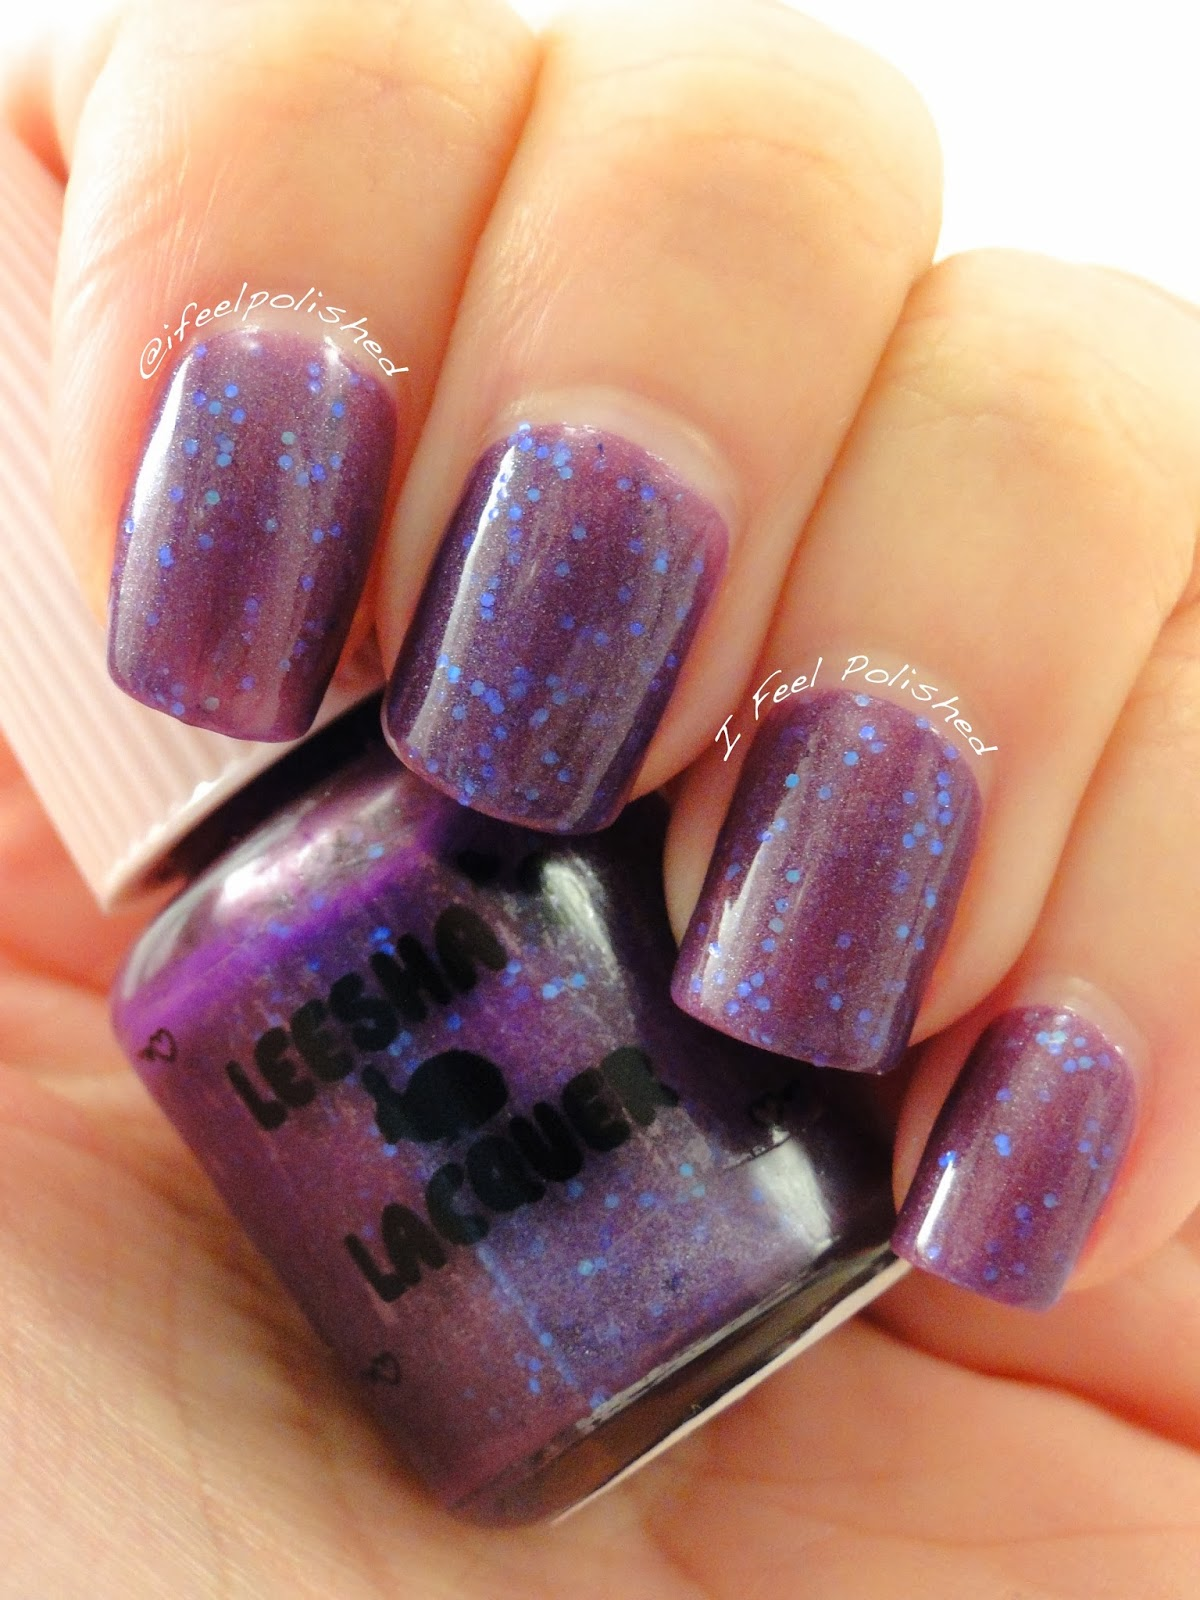 Leesha's Lacquer Dragon's Wings